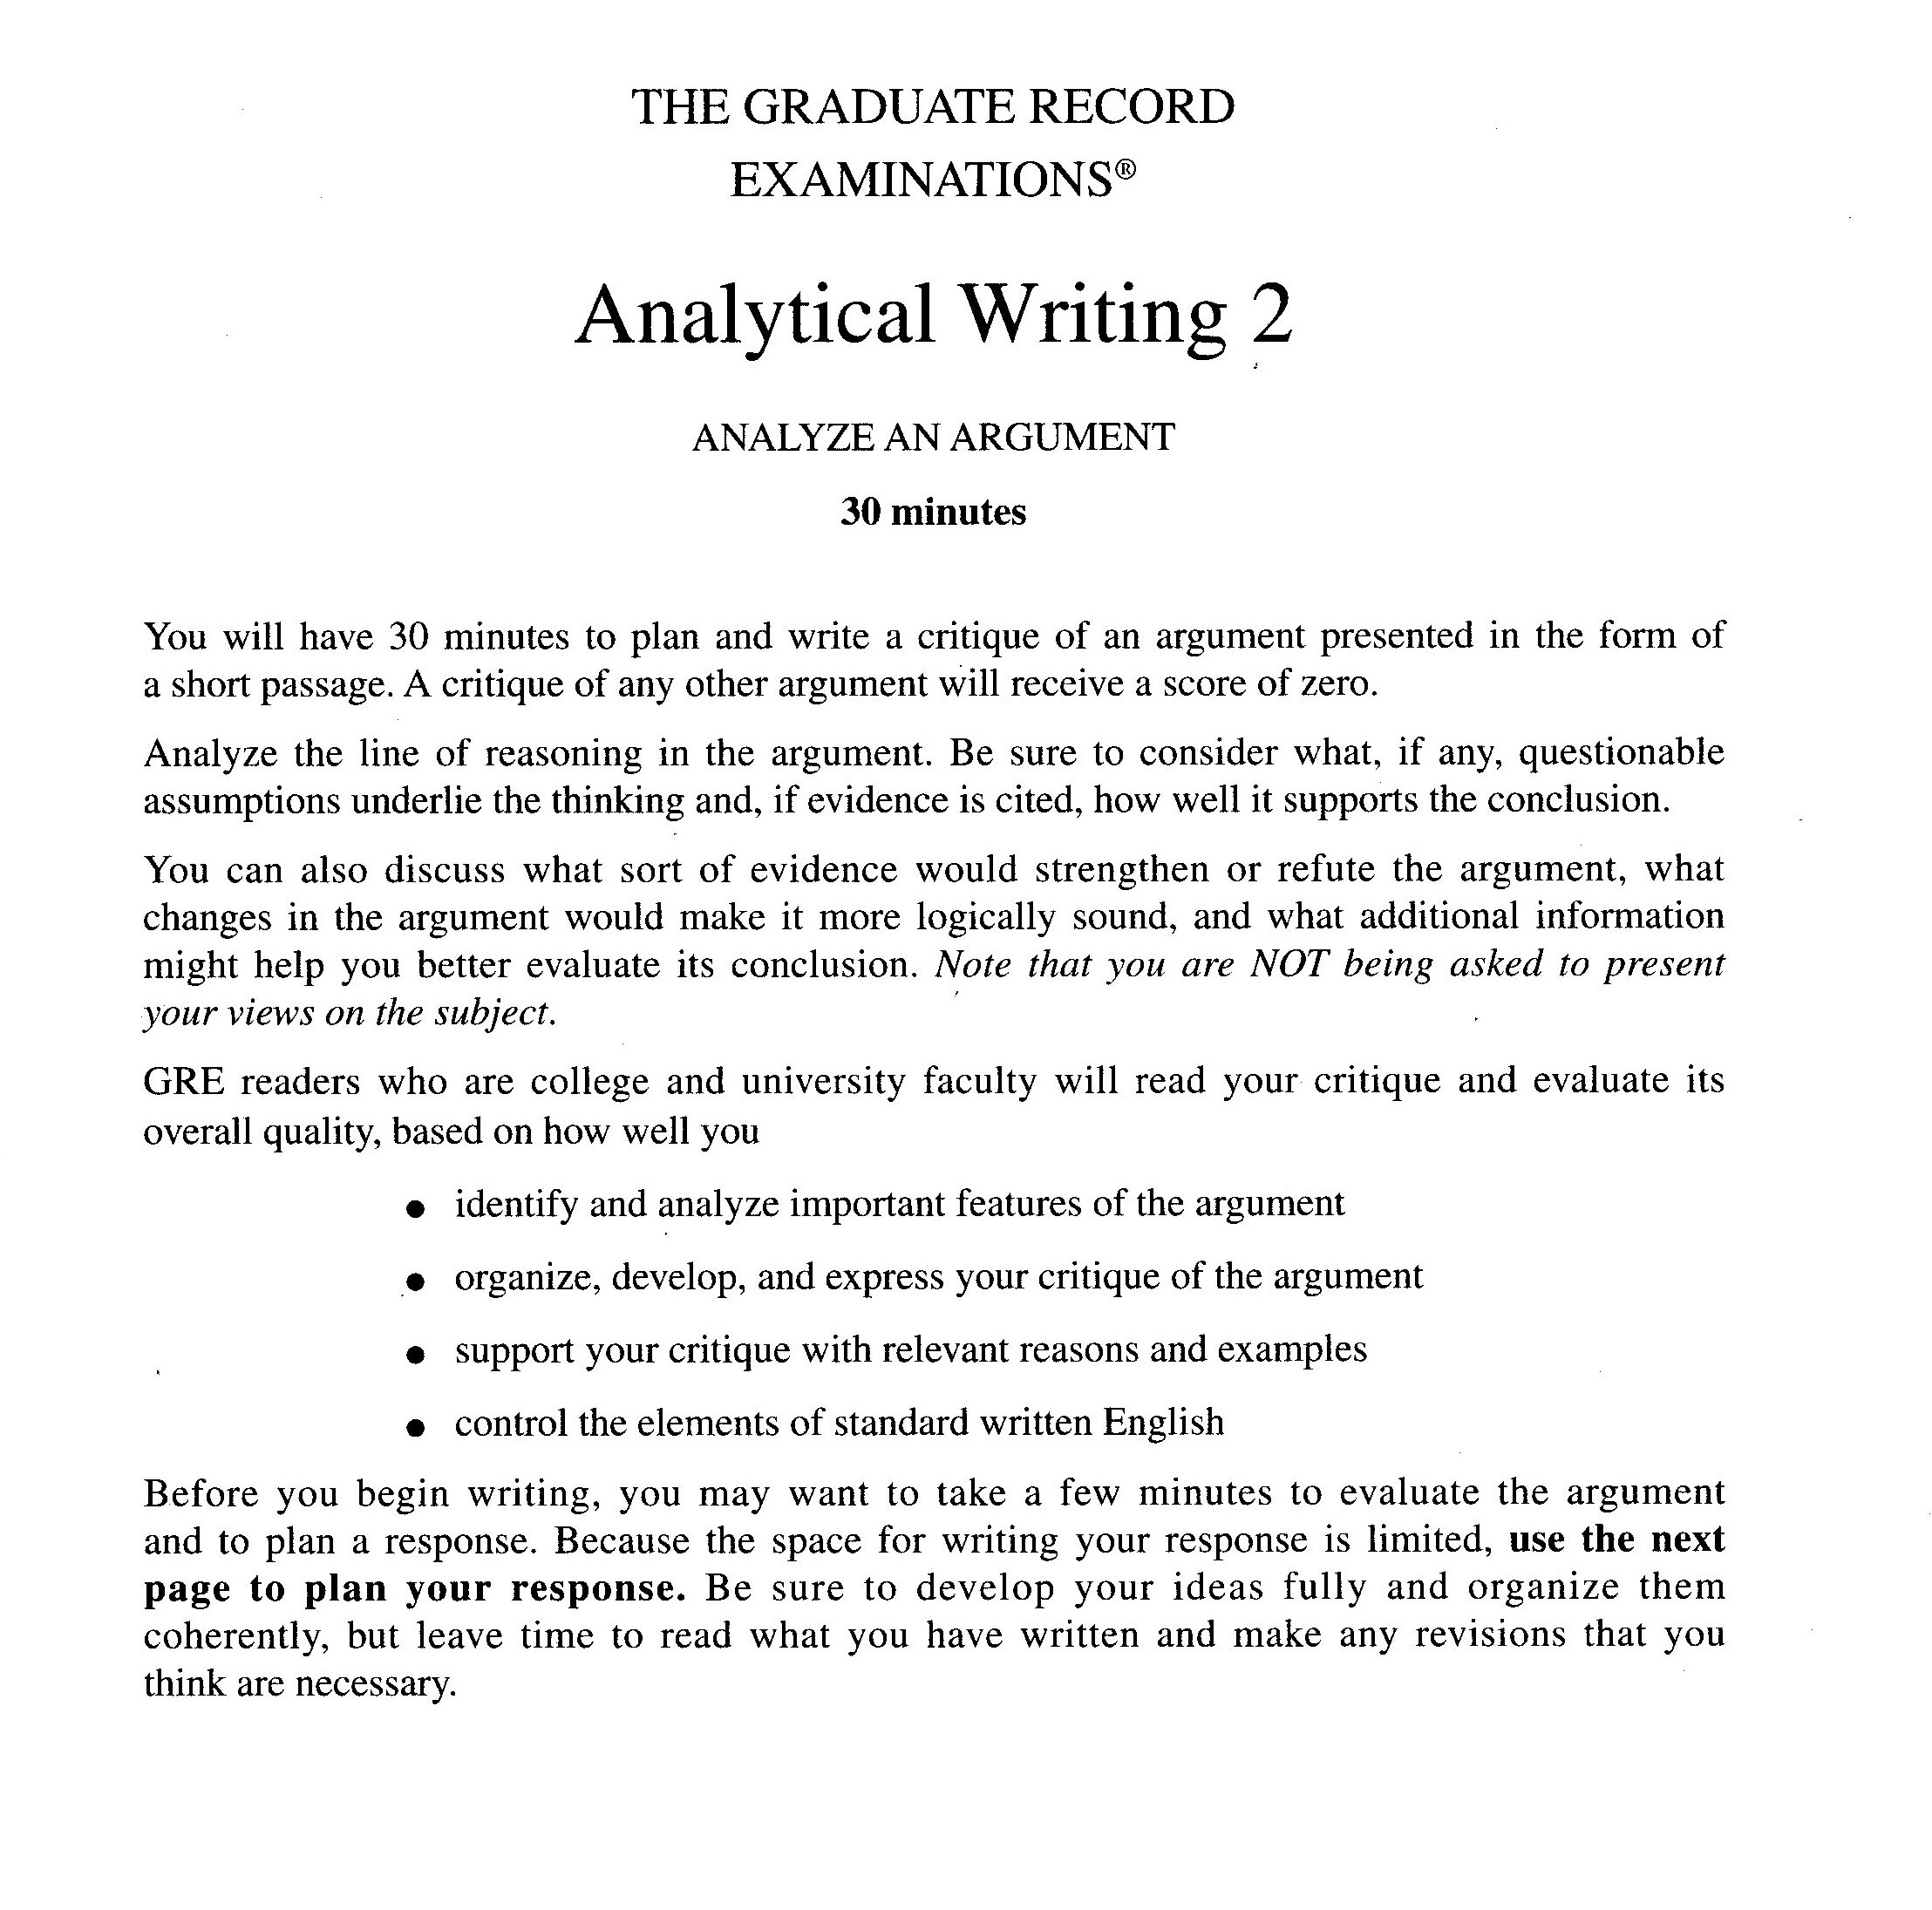 011 Gre Essay Topics Analytical20writing20response20task20directions20for20gre201 Rare Argument Answers Magoosh Pool Full